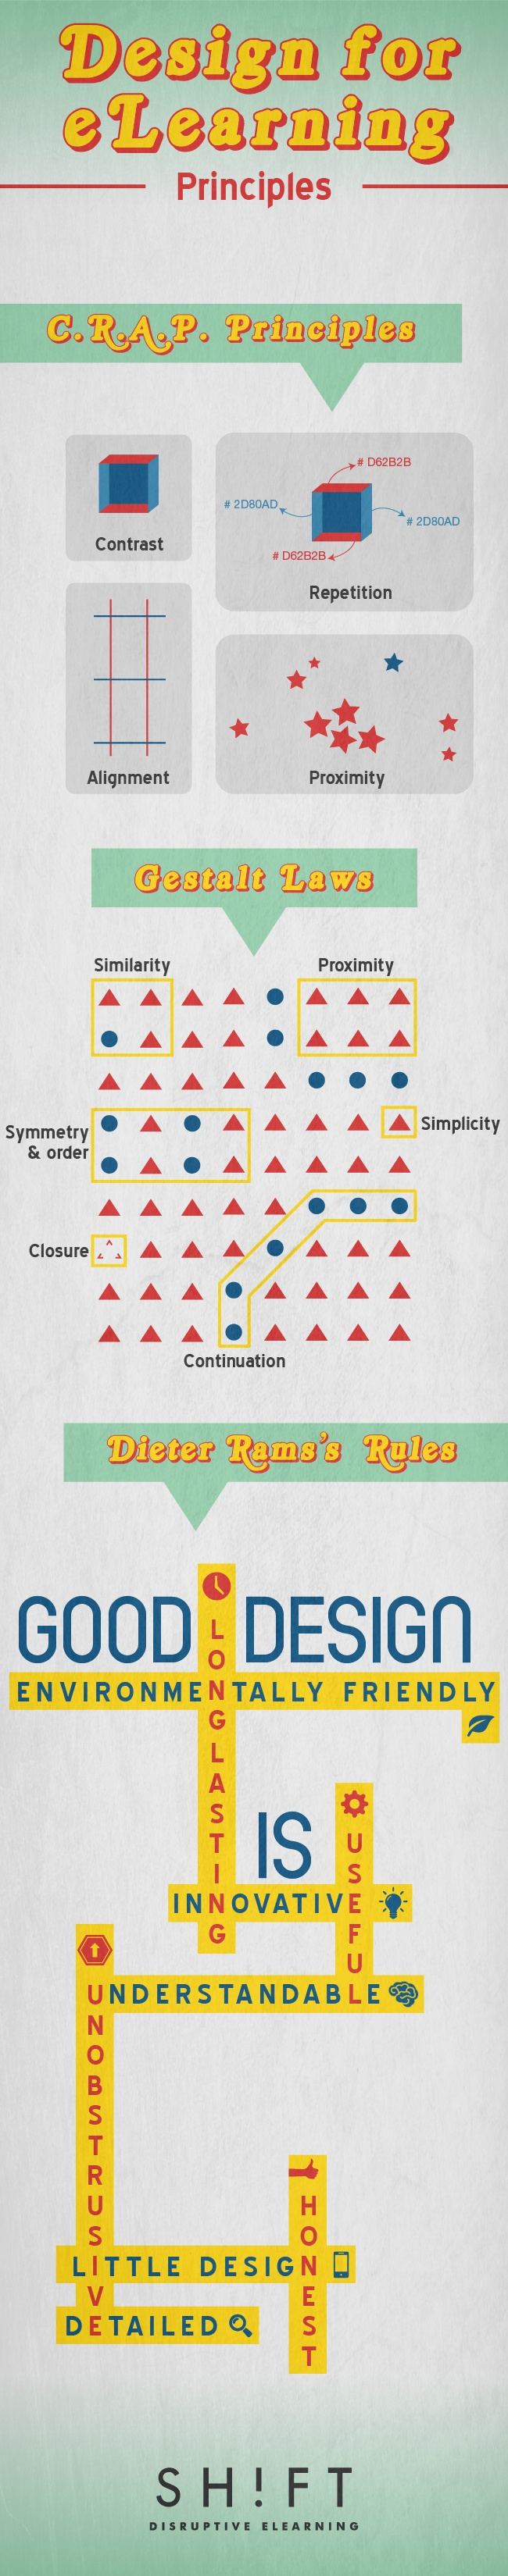 Design Theories and Principles That eLearning Designer Should Know Infographic